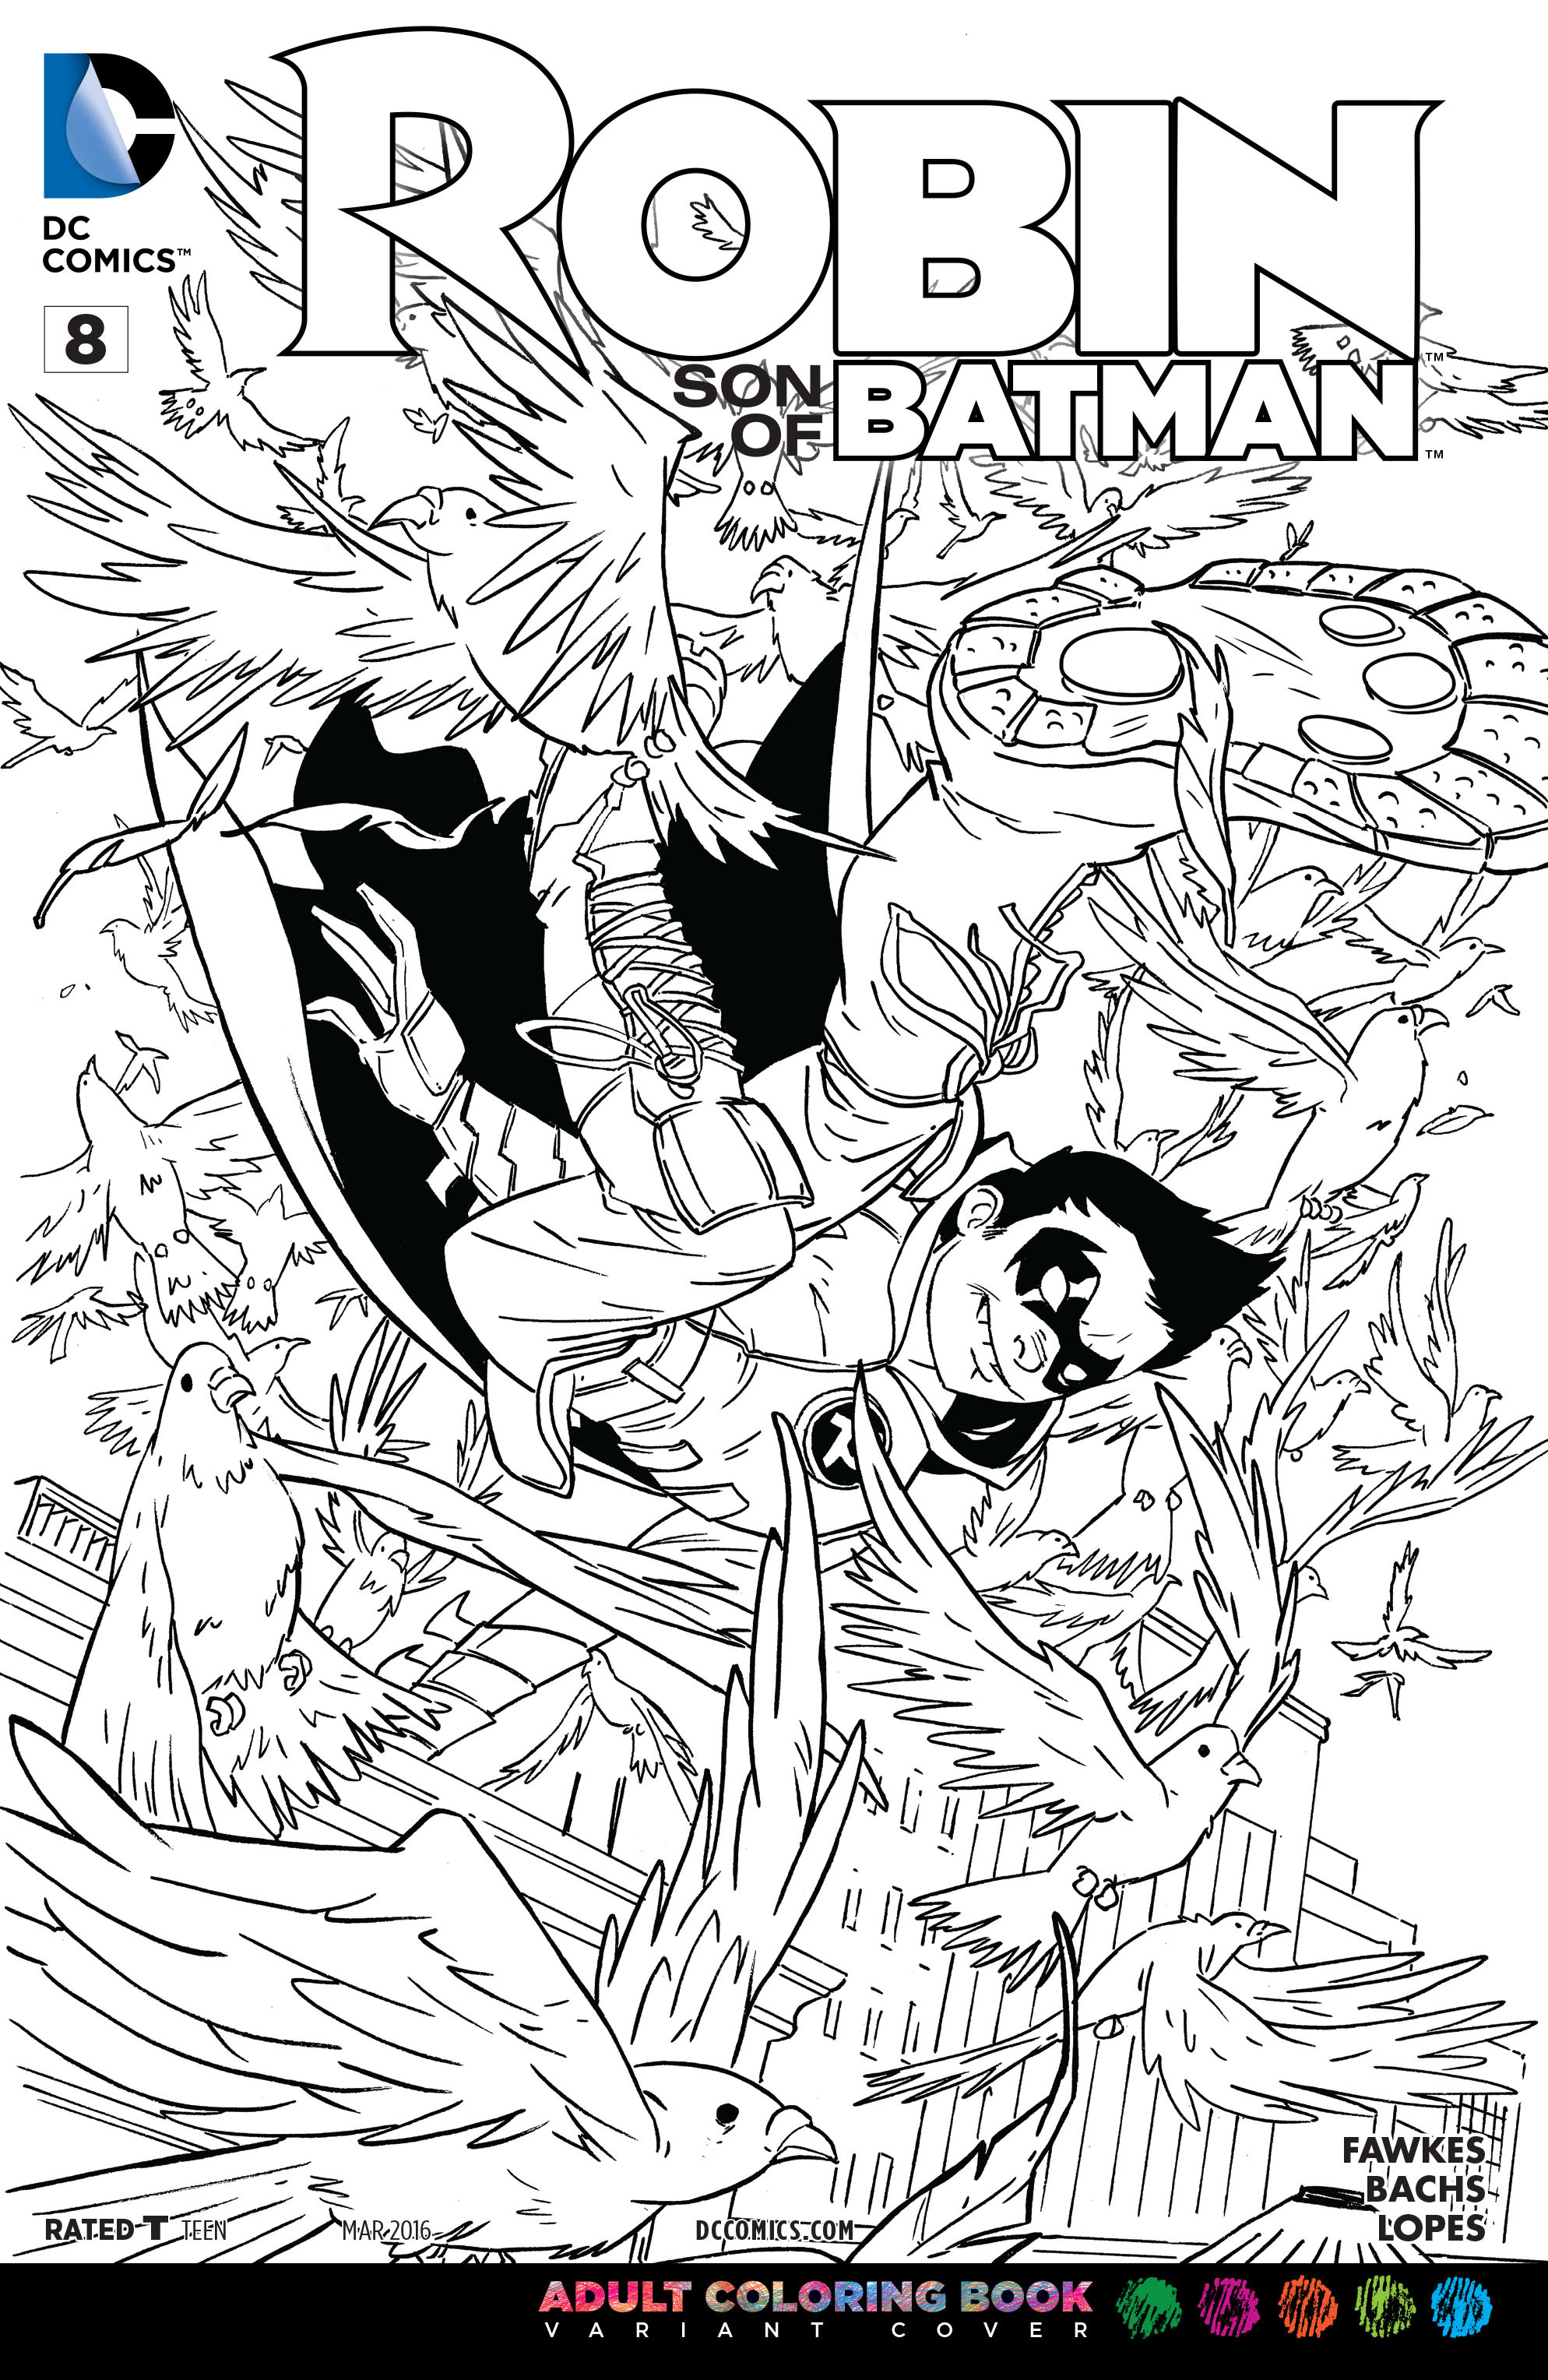 Image - Robin Son of Batman Vol 1 8 Adult Coloring Book Variant.jpg ...